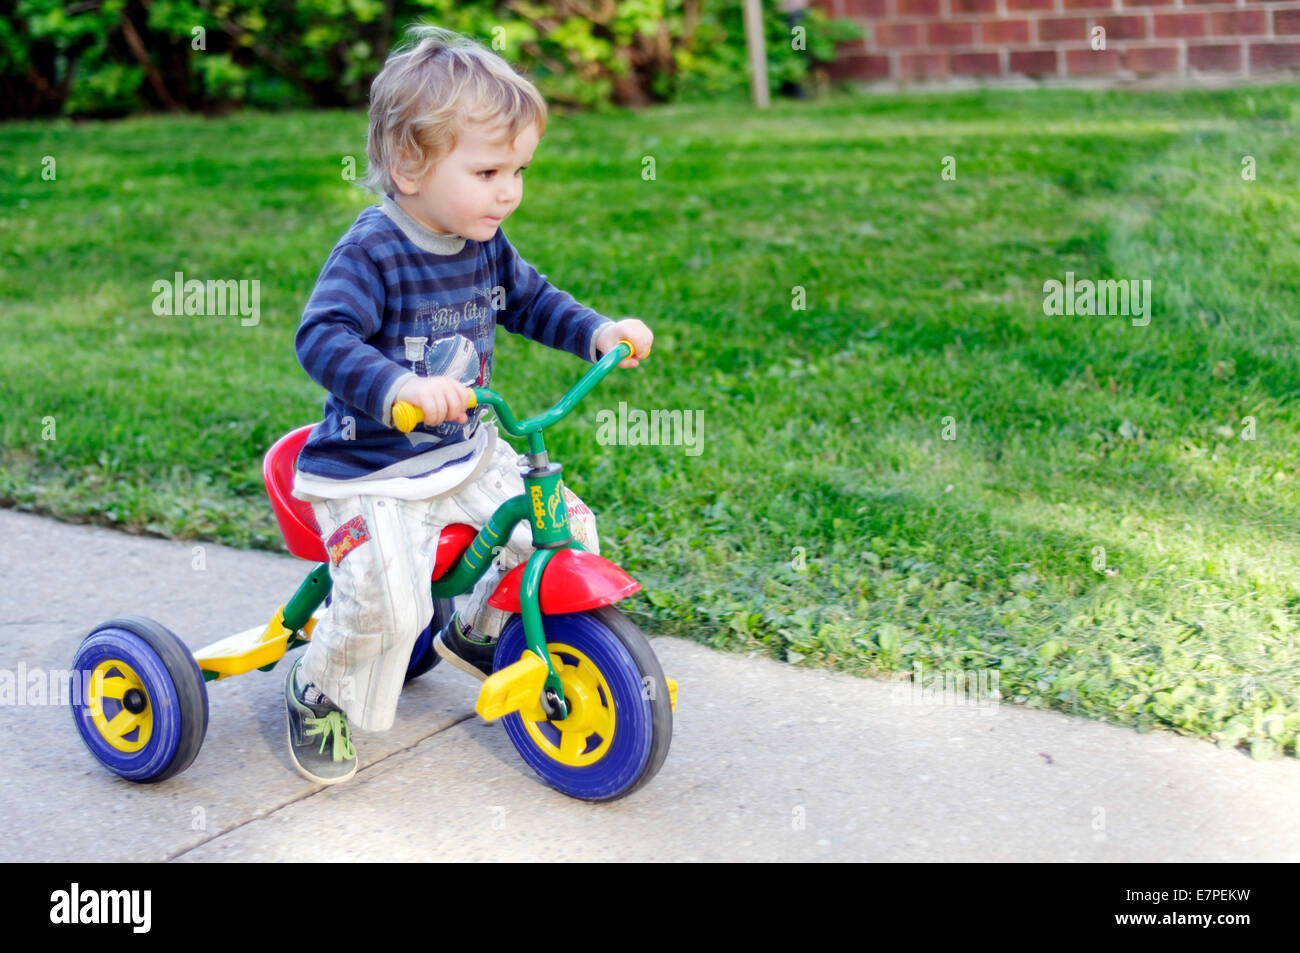 A young boy  (2 1/2 yrs) riding a tricycle outside - Stock Image